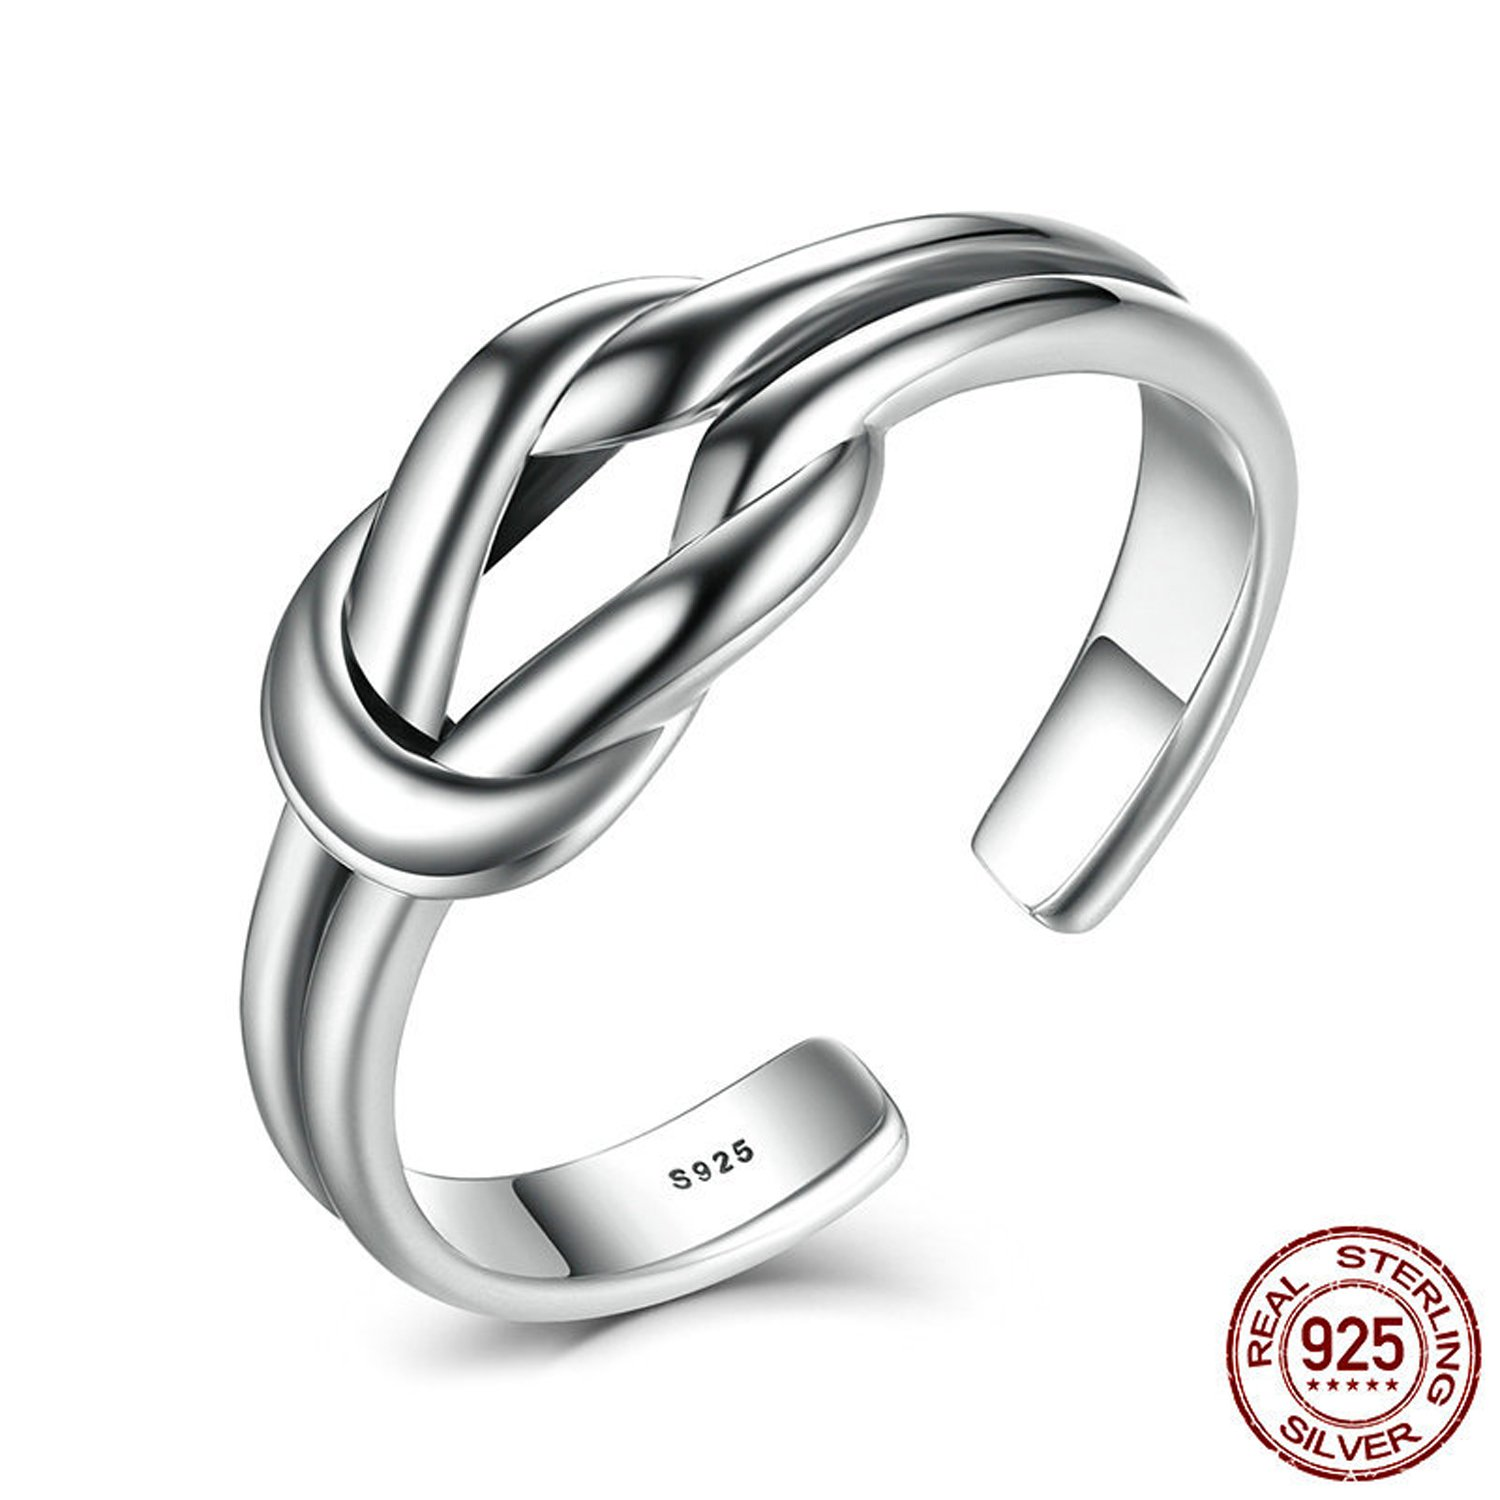 XingYue Jewelry 925 Sterling Silver Infinity Love Knot Ring Expandable Enternity Wedding Open Rings Girls Women Jewelry